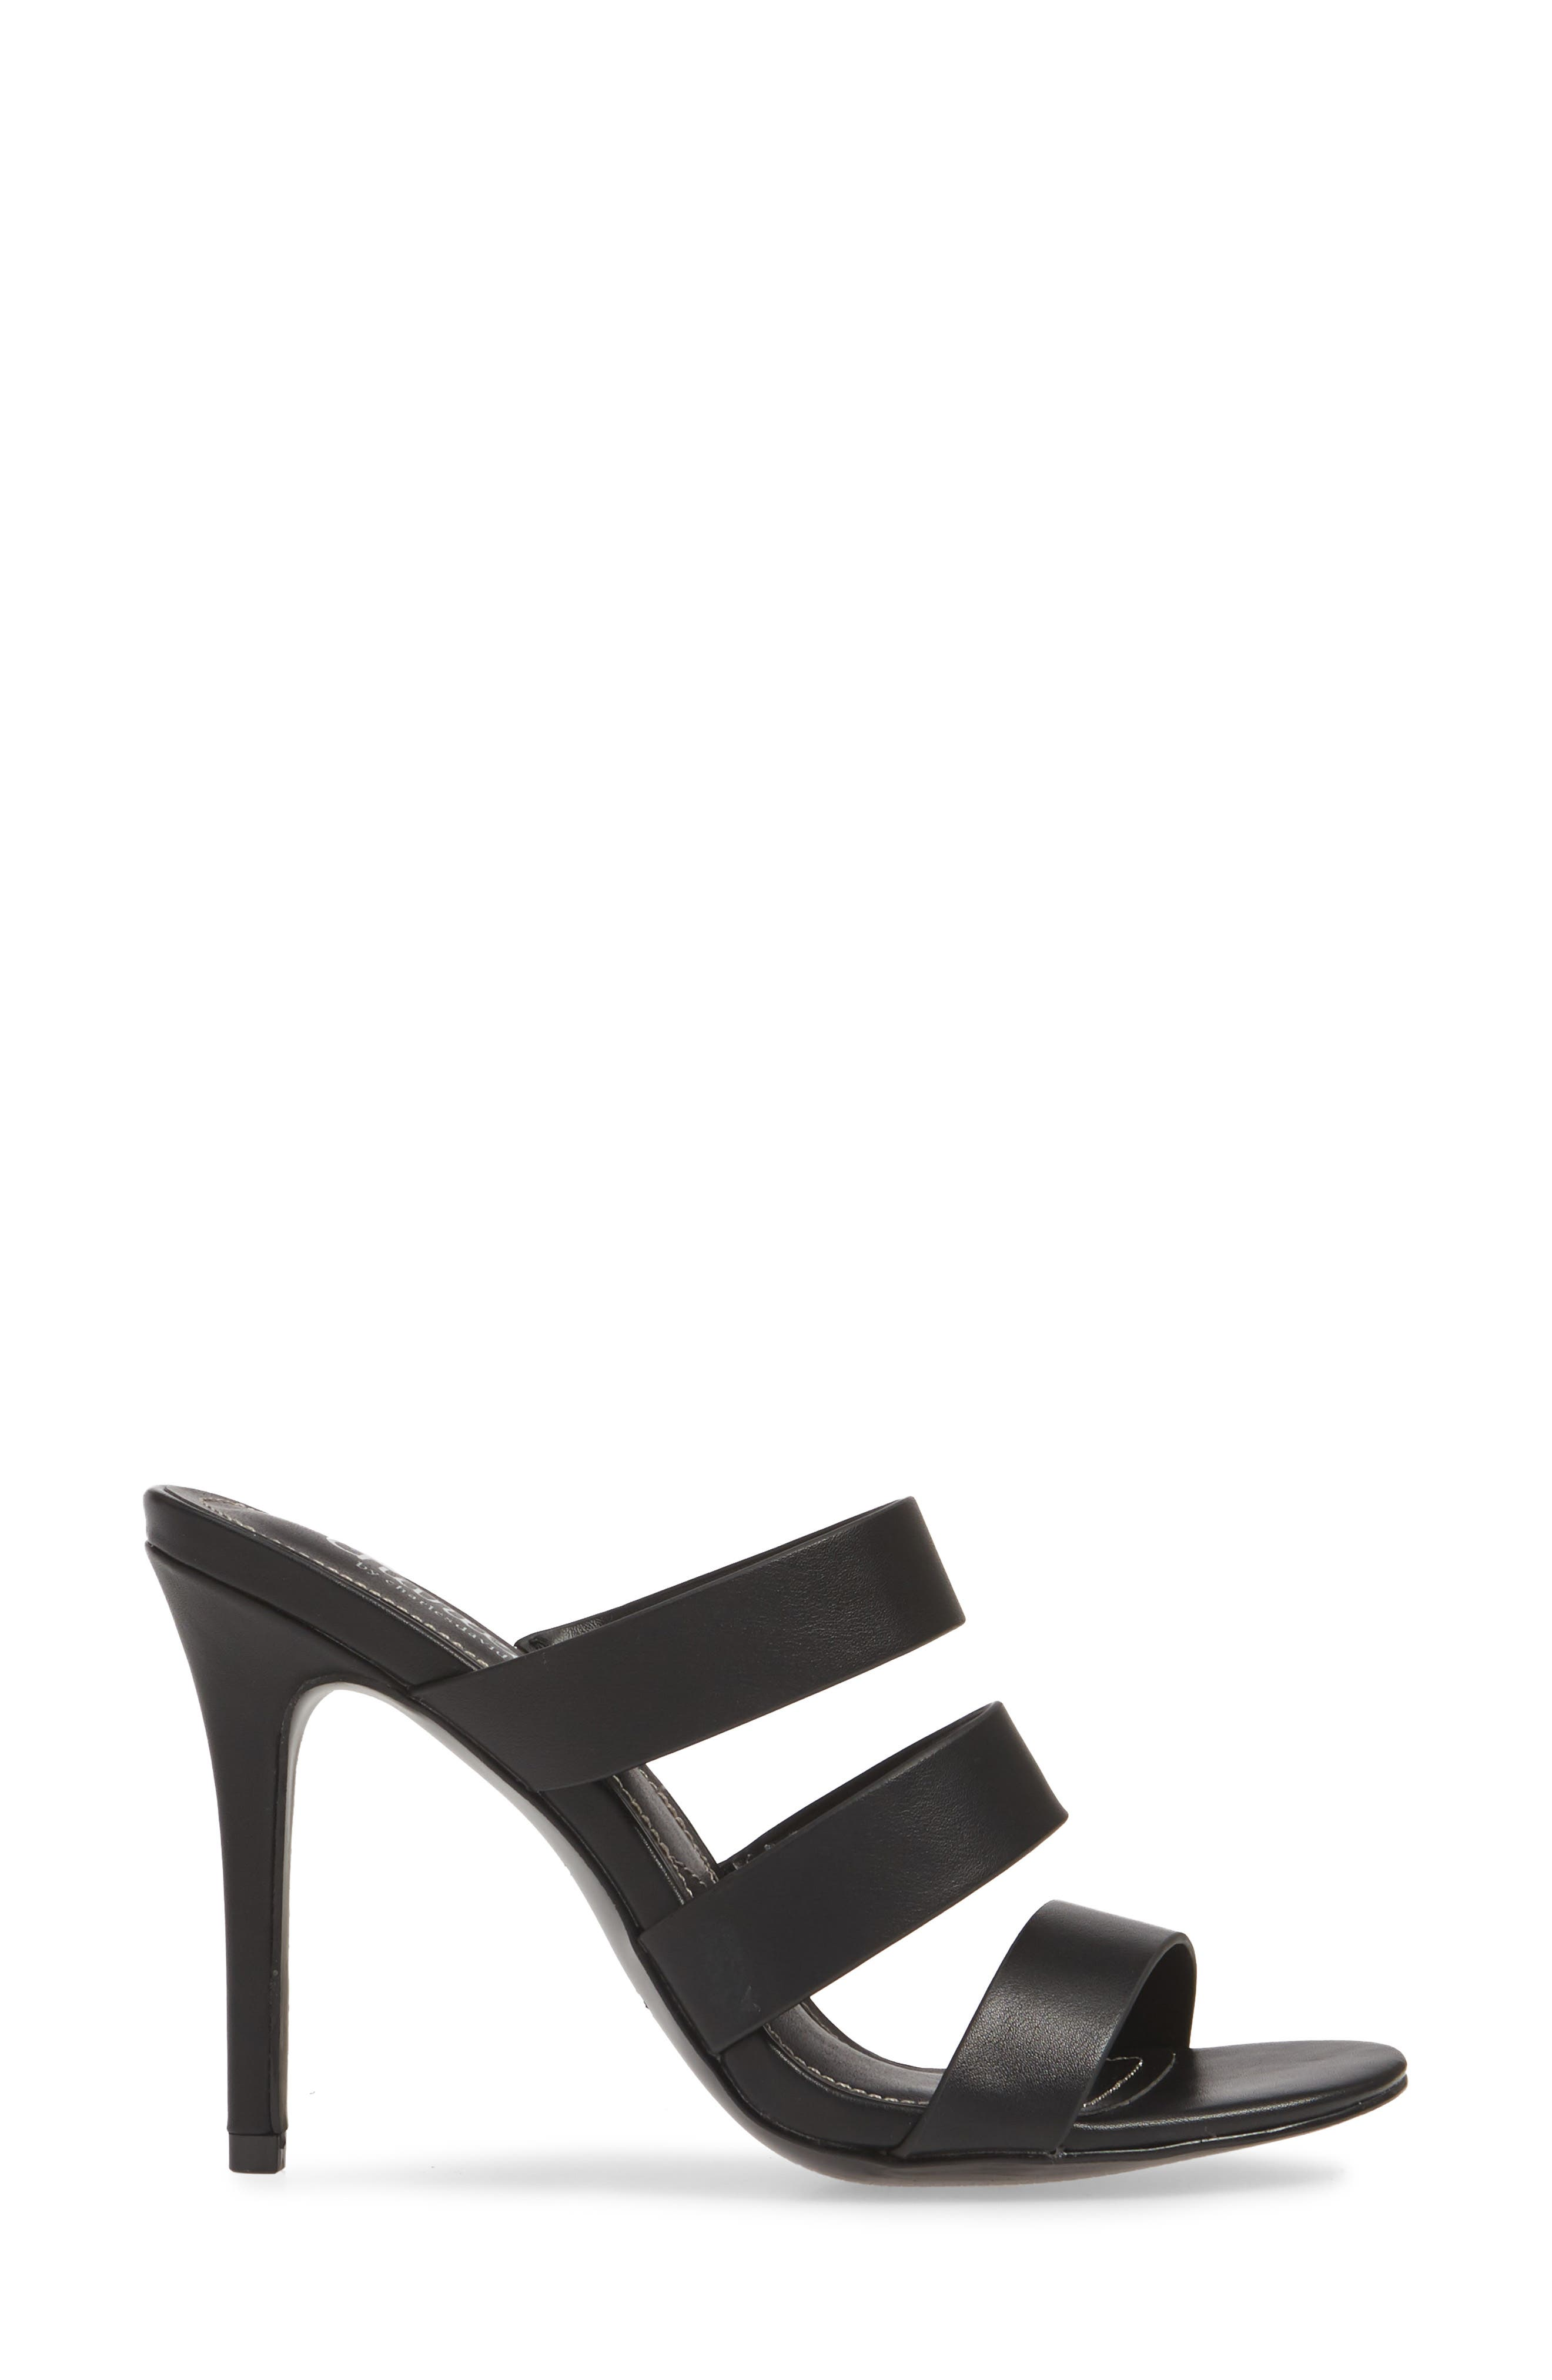 CHARLES BY CHARLES DAVID, Rivalary Slide Sandal, Alternate thumbnail 3, color, BLACK FAUX LEATHER